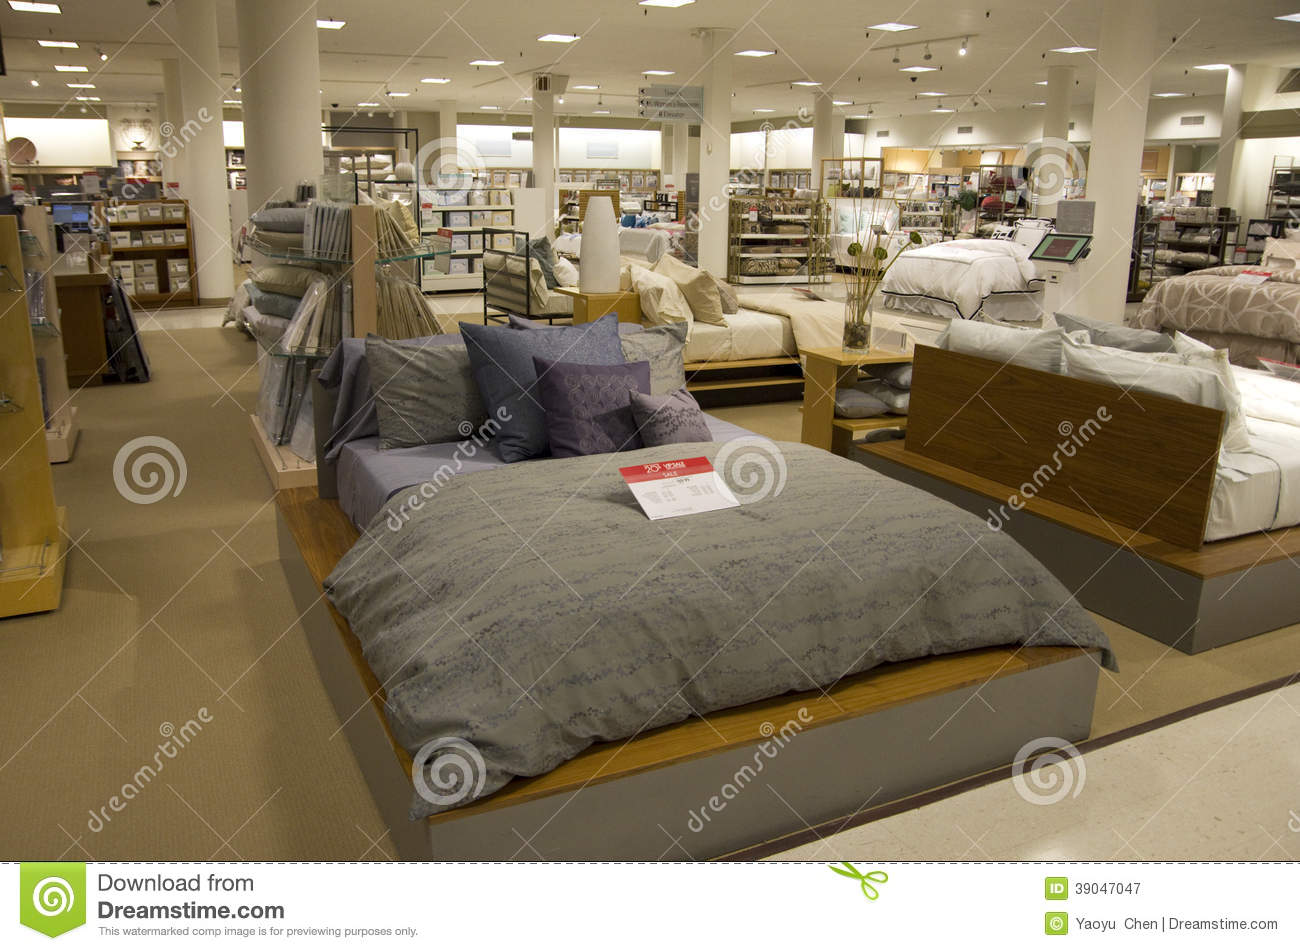 Bedding And Home Goods Department Store Stock Photo